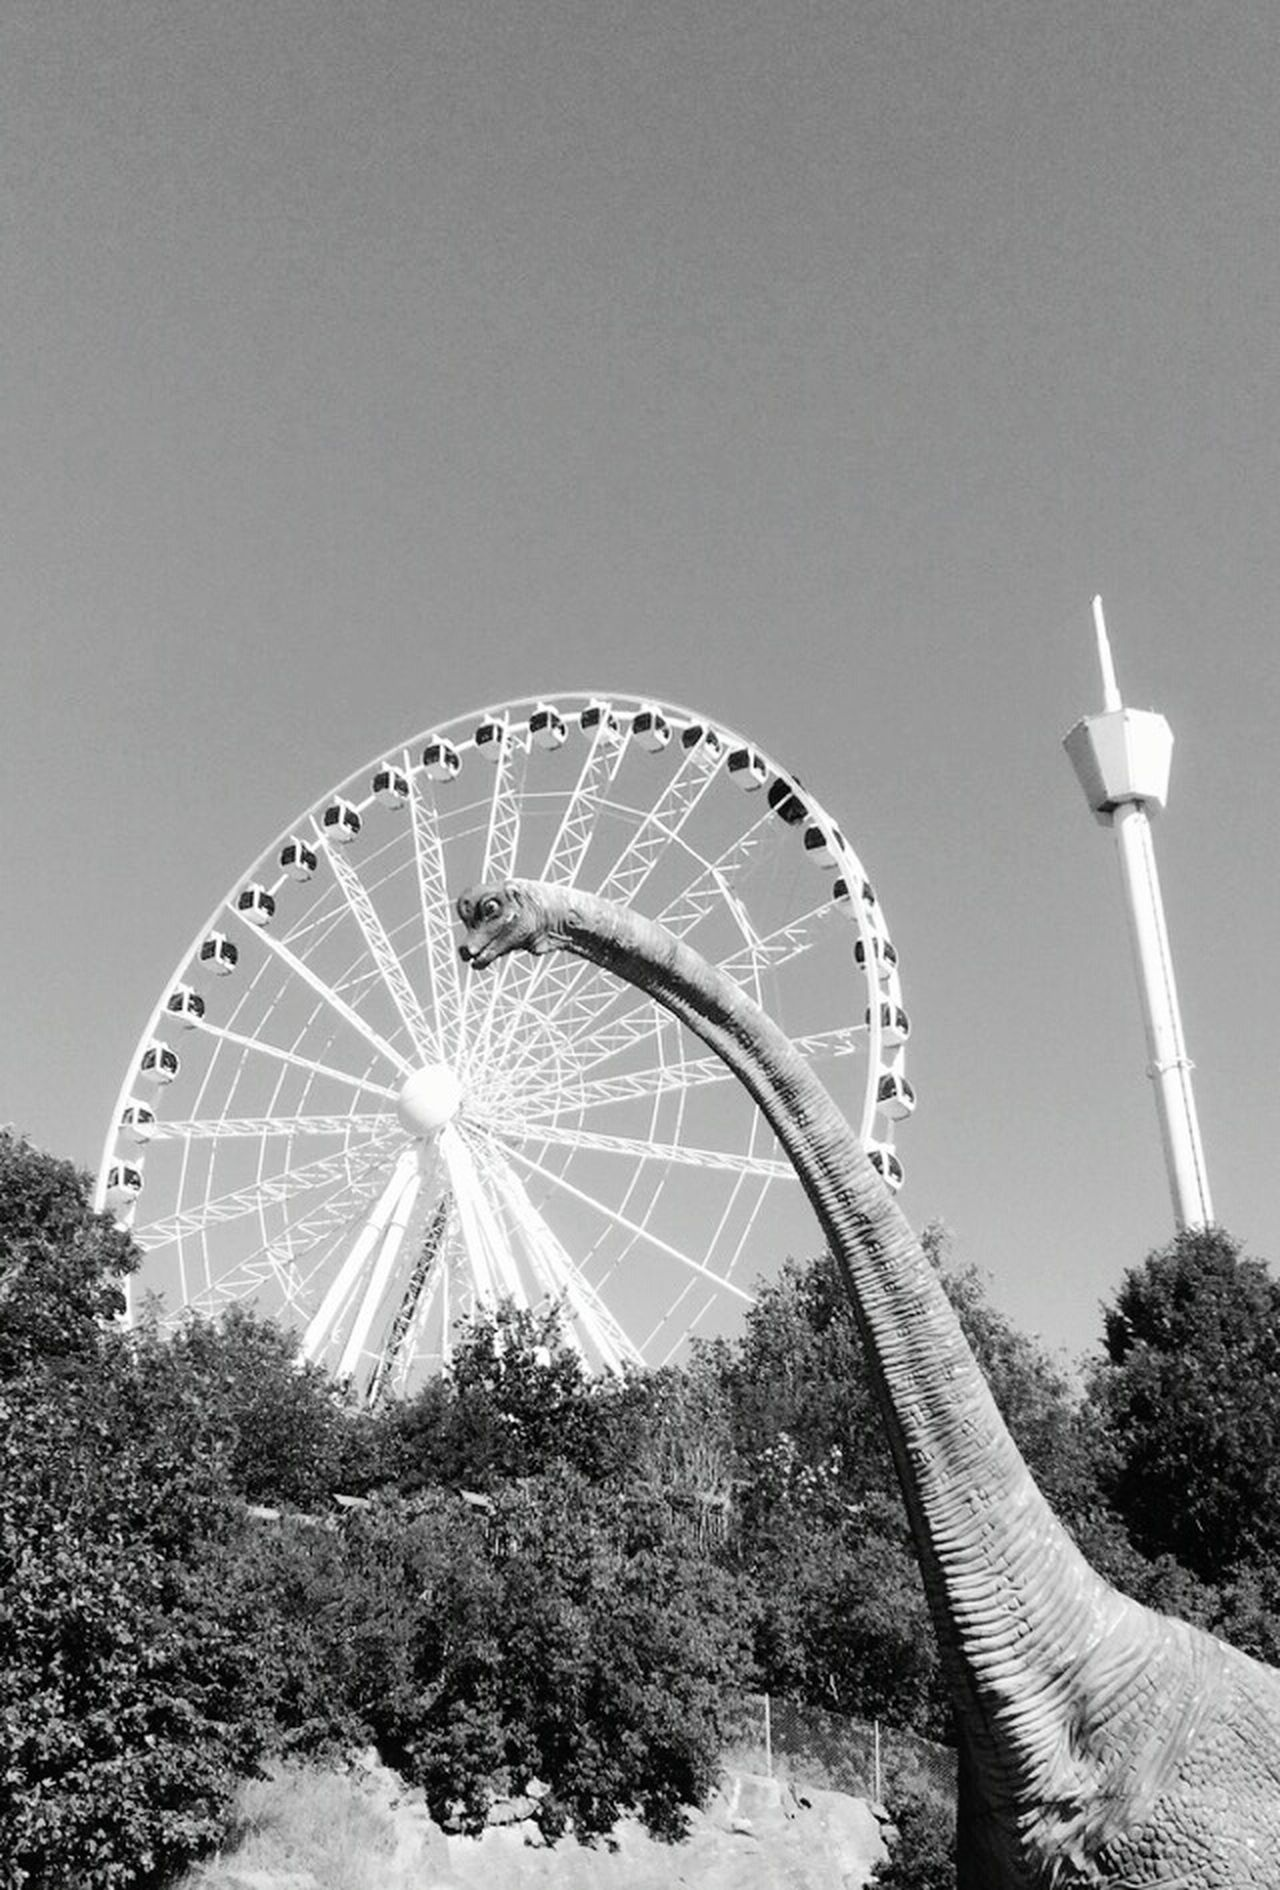 Liseberg Gothenburg Gothenburg_photographer_ Gothenburg_bw Blackandwhite Photography Childhood Sweden Urban Landscape Happiness Black & White Dinosaur Tivoli Amusementpark Eyemphotography EyeEm Best Shots The Essence Of Summer Buildings & Sky Uraban The Architect - 2016 EyeEm Awards Feel The Journey Adapted To The City